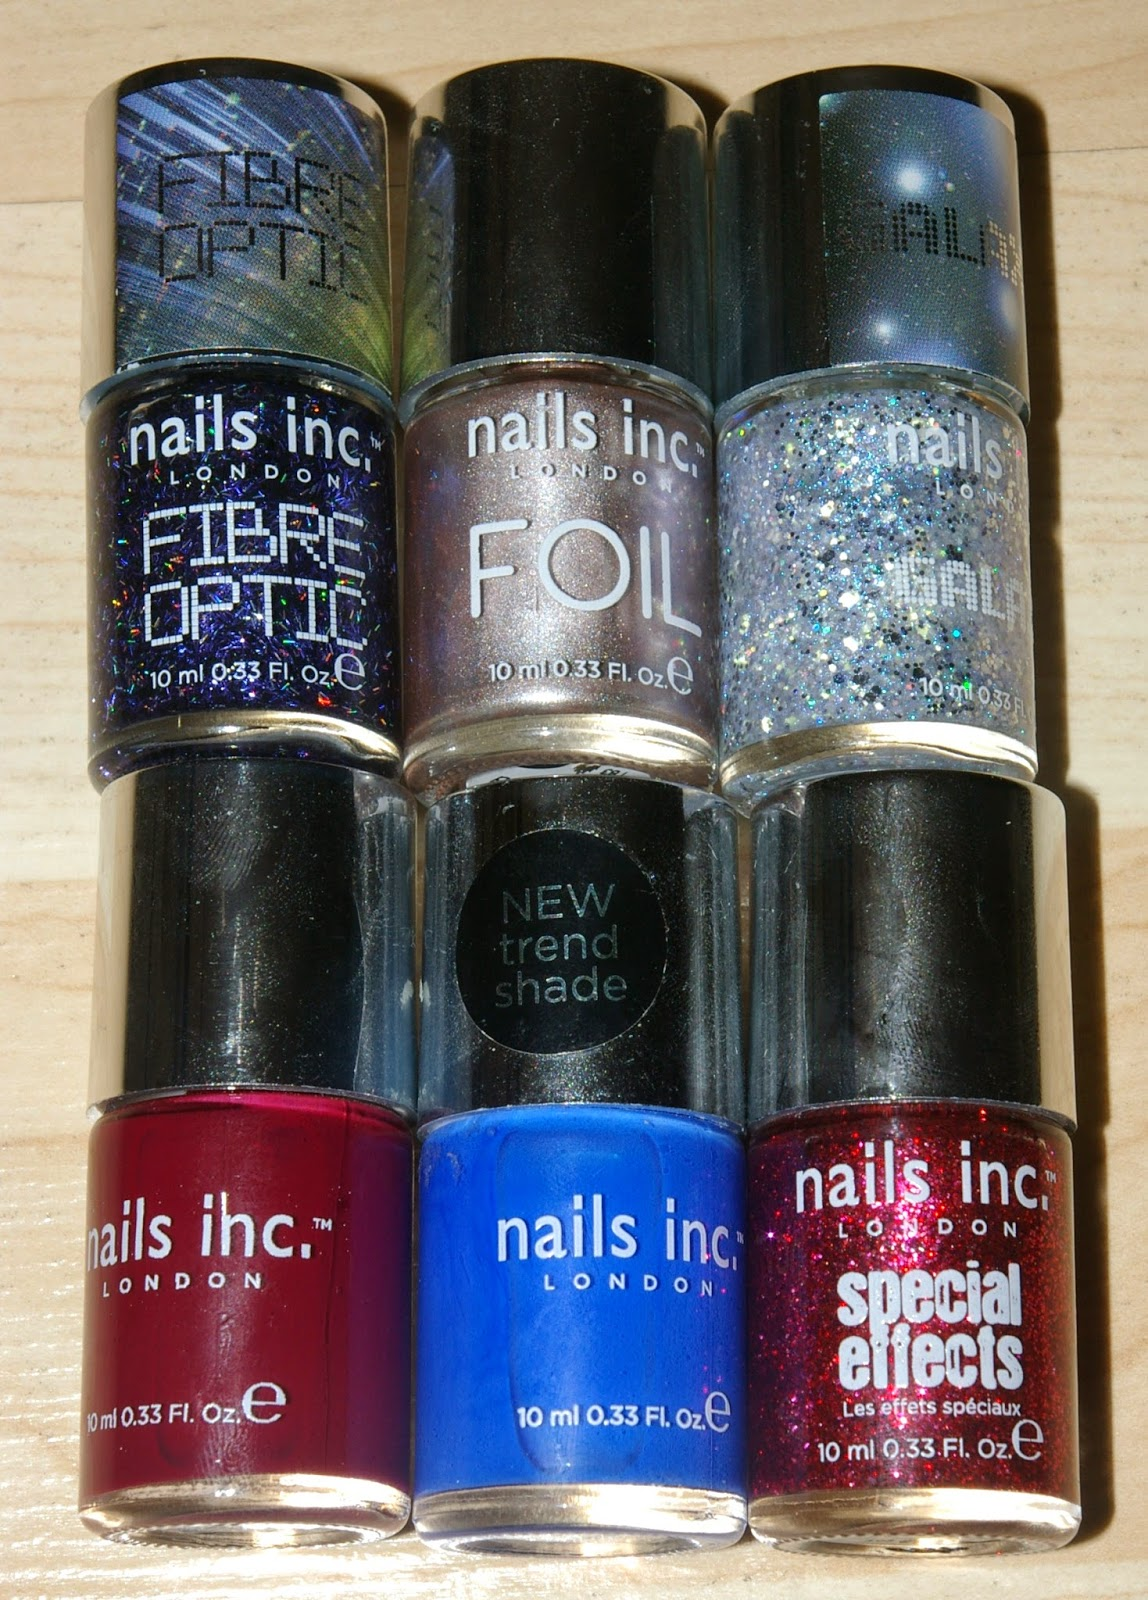 Nails Inc Polishes in